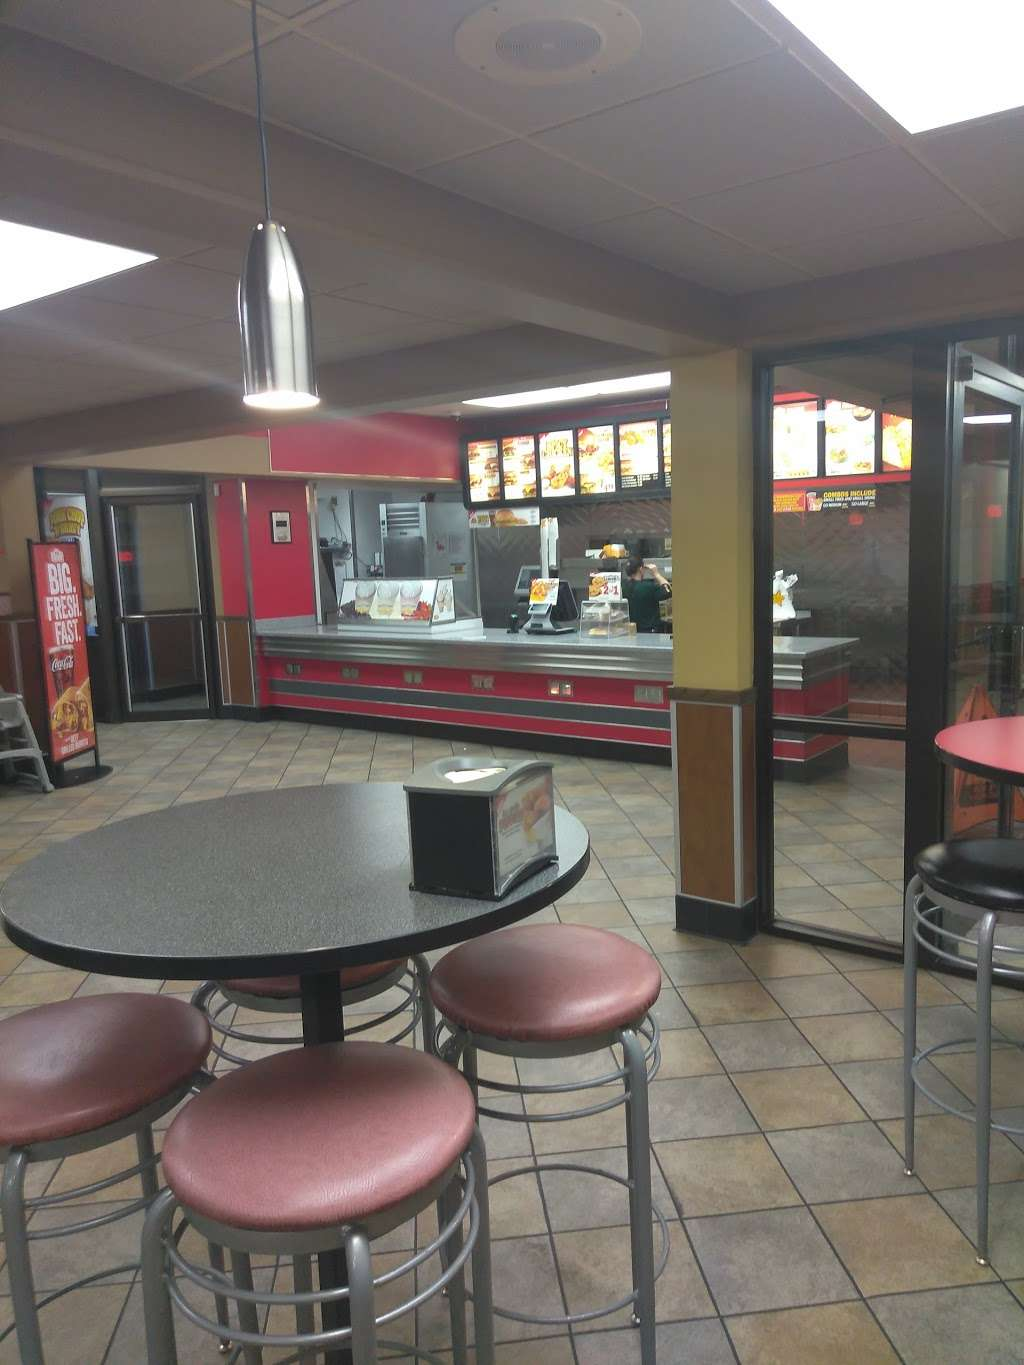 Hardees - restaurant  | Photo 5 of 10 | Address: 4401 E 10th St, Indianapolis, IN 46201, USA | Phone: (317) 359-4655